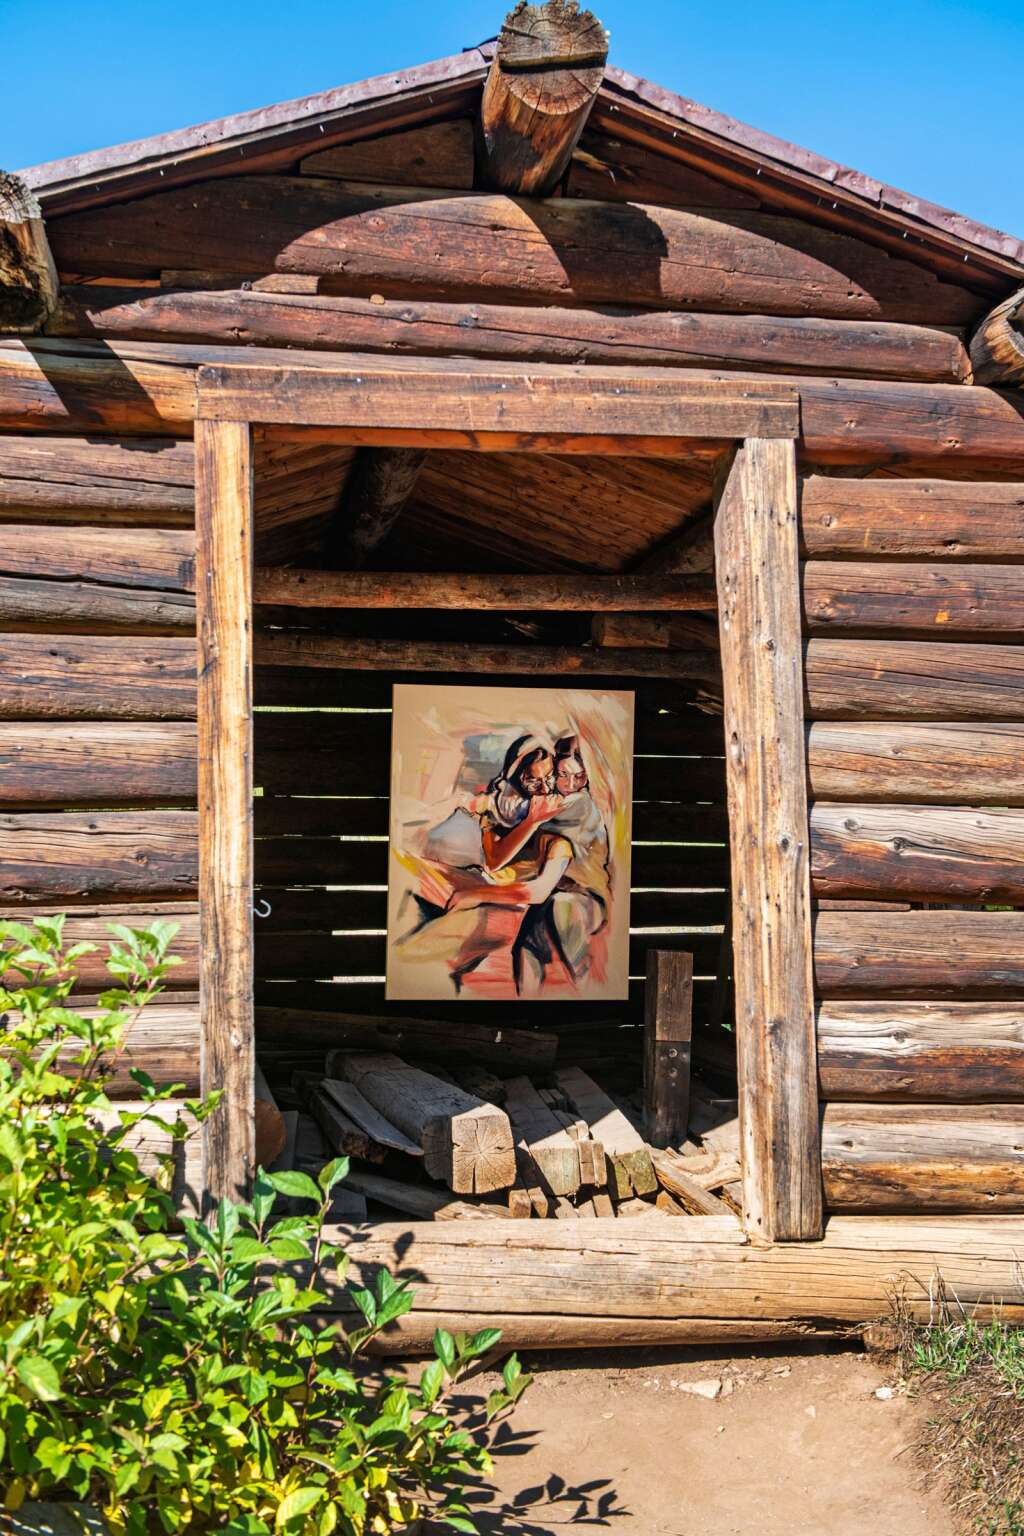 A painting of two dear friends of artist Kaitlyn Tucek is displayed in a building at the entrance to the Ashcroft Ghost Town as part of her temporary two-day exhibition 'The Lilac Hour' outside of Aspen on Friday, Sept. 17, 2021. (Kelsey Brunner/The Aspen Times)